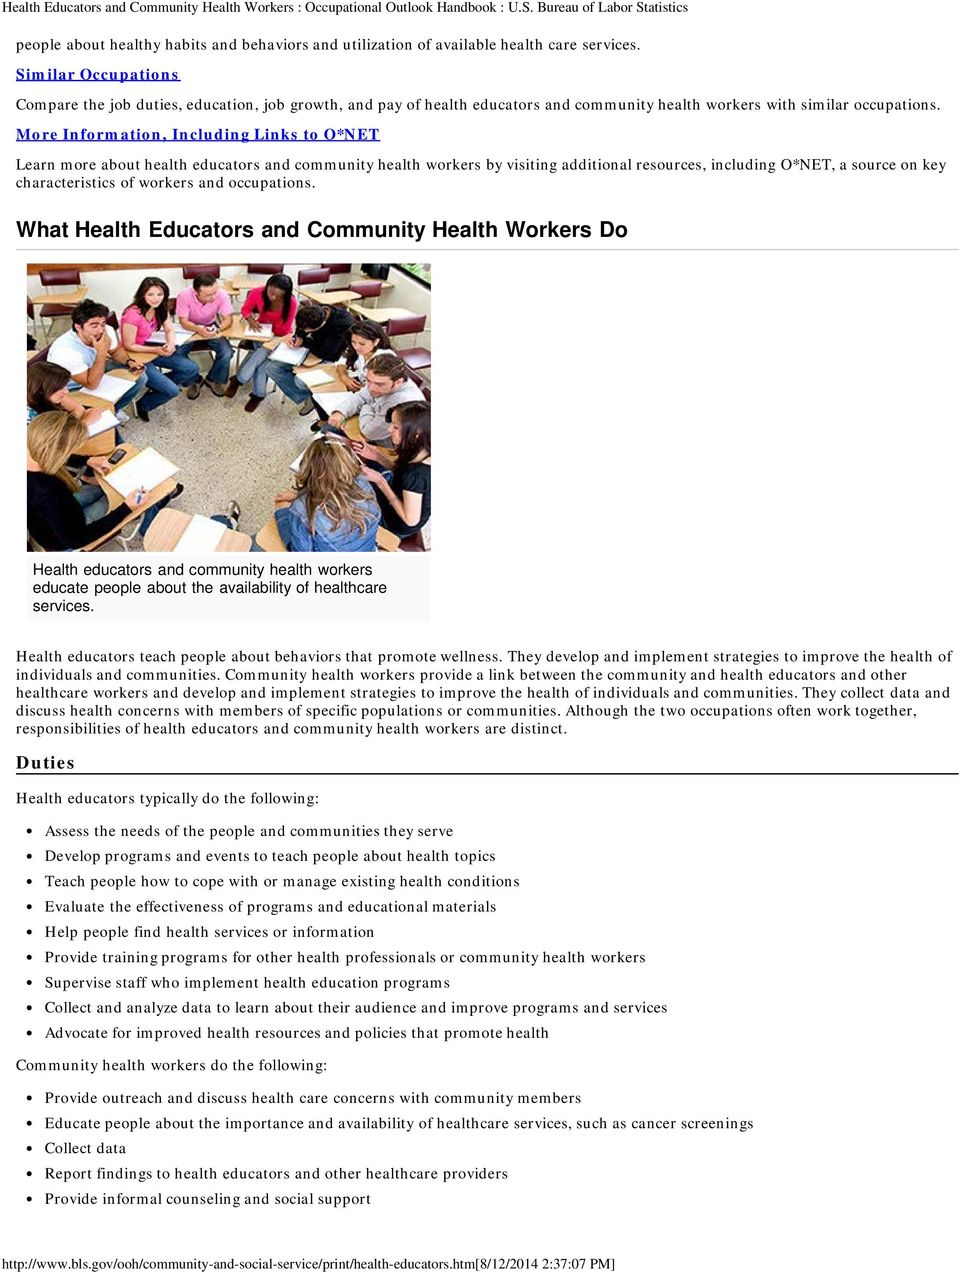 More Information, Including Links to O*NET Learn more about health educators and community health workers by visiting additional resources, including O*NET, a source on key characteristics of workers